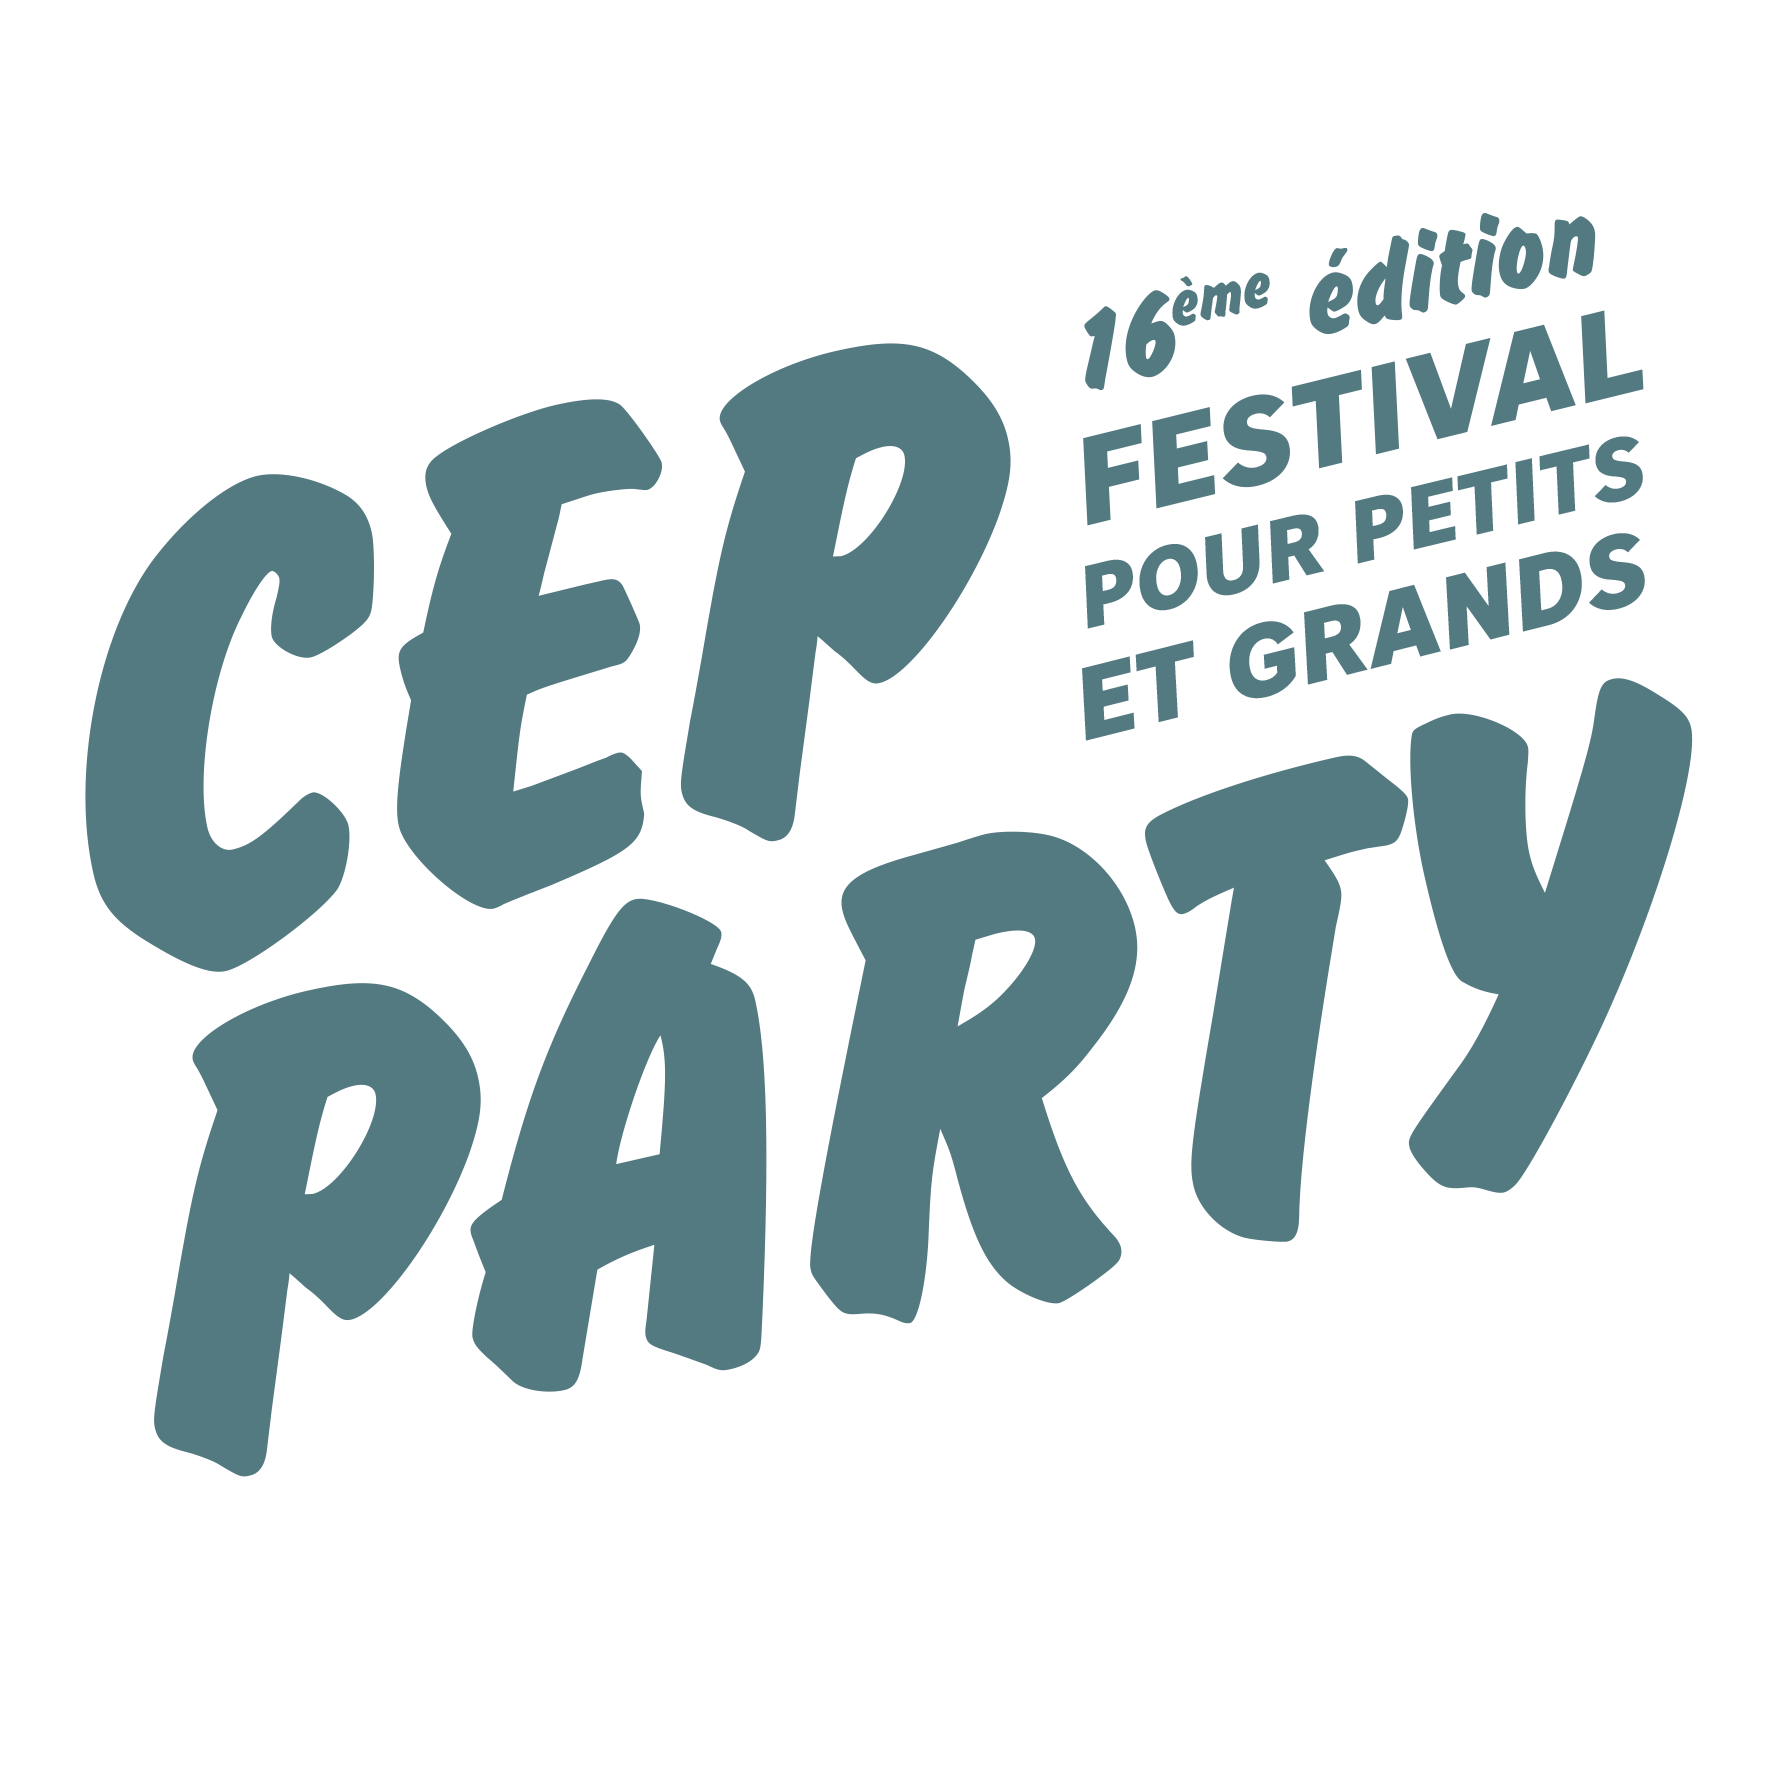 Festival Cep Party